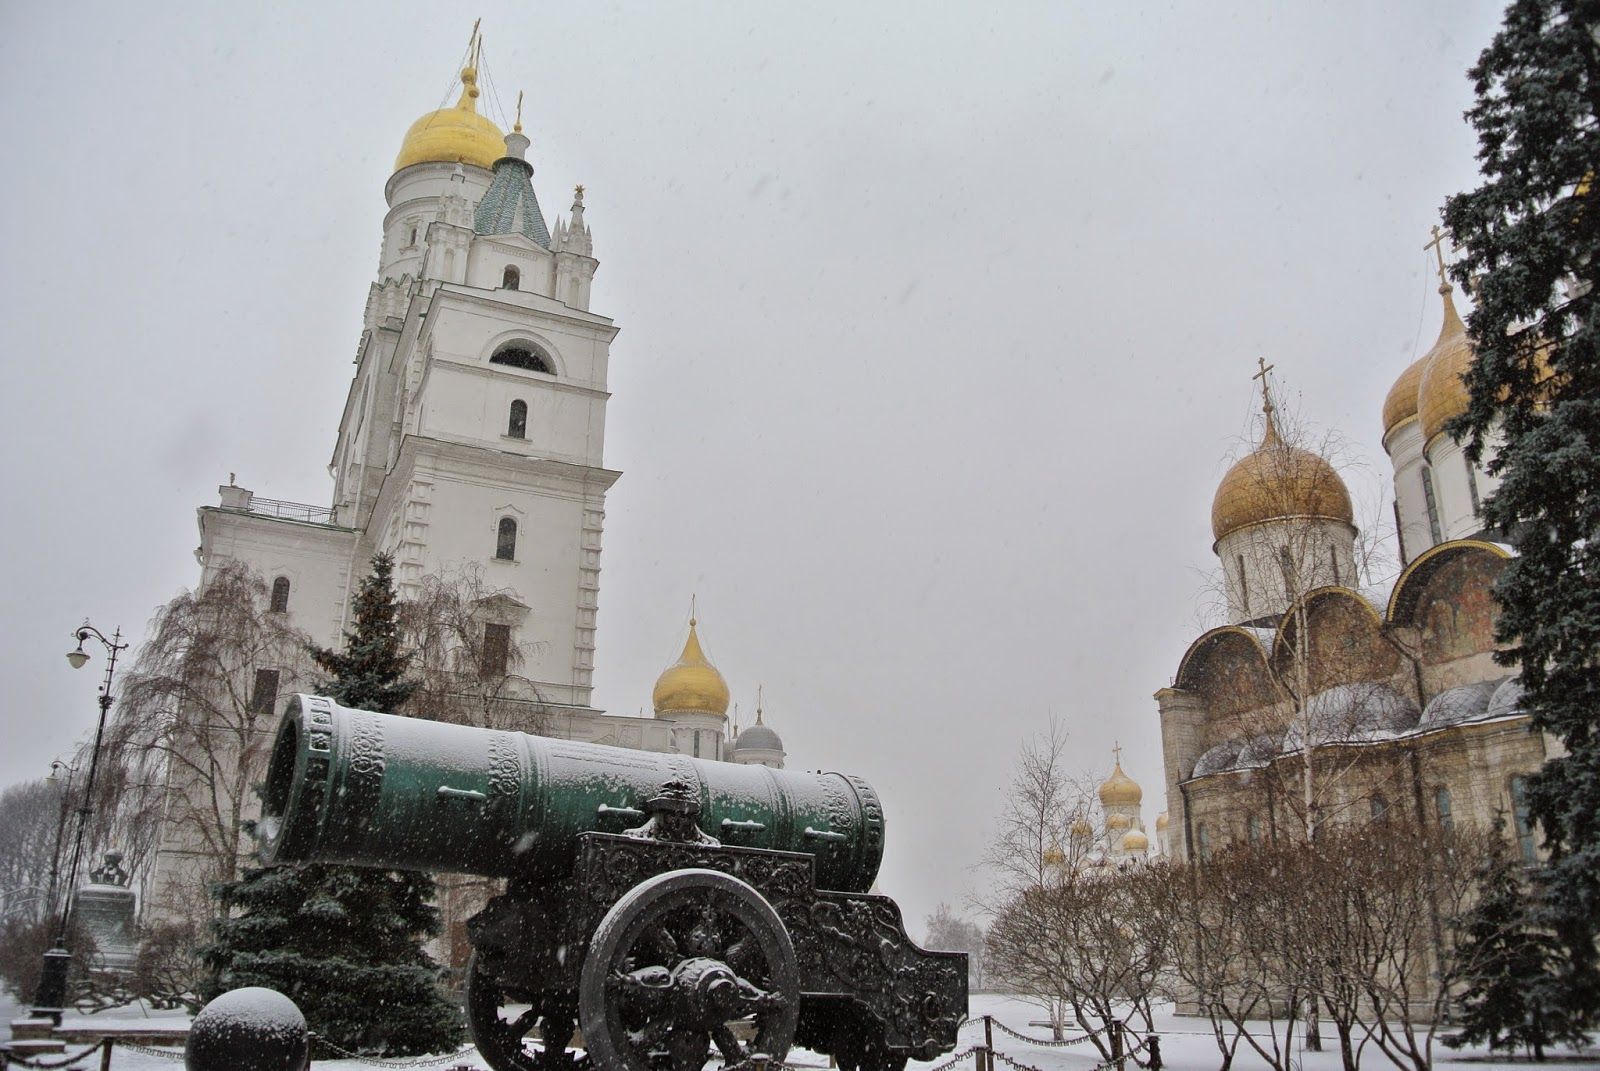 Cannon and churches within the Kremlin walls, Moscow